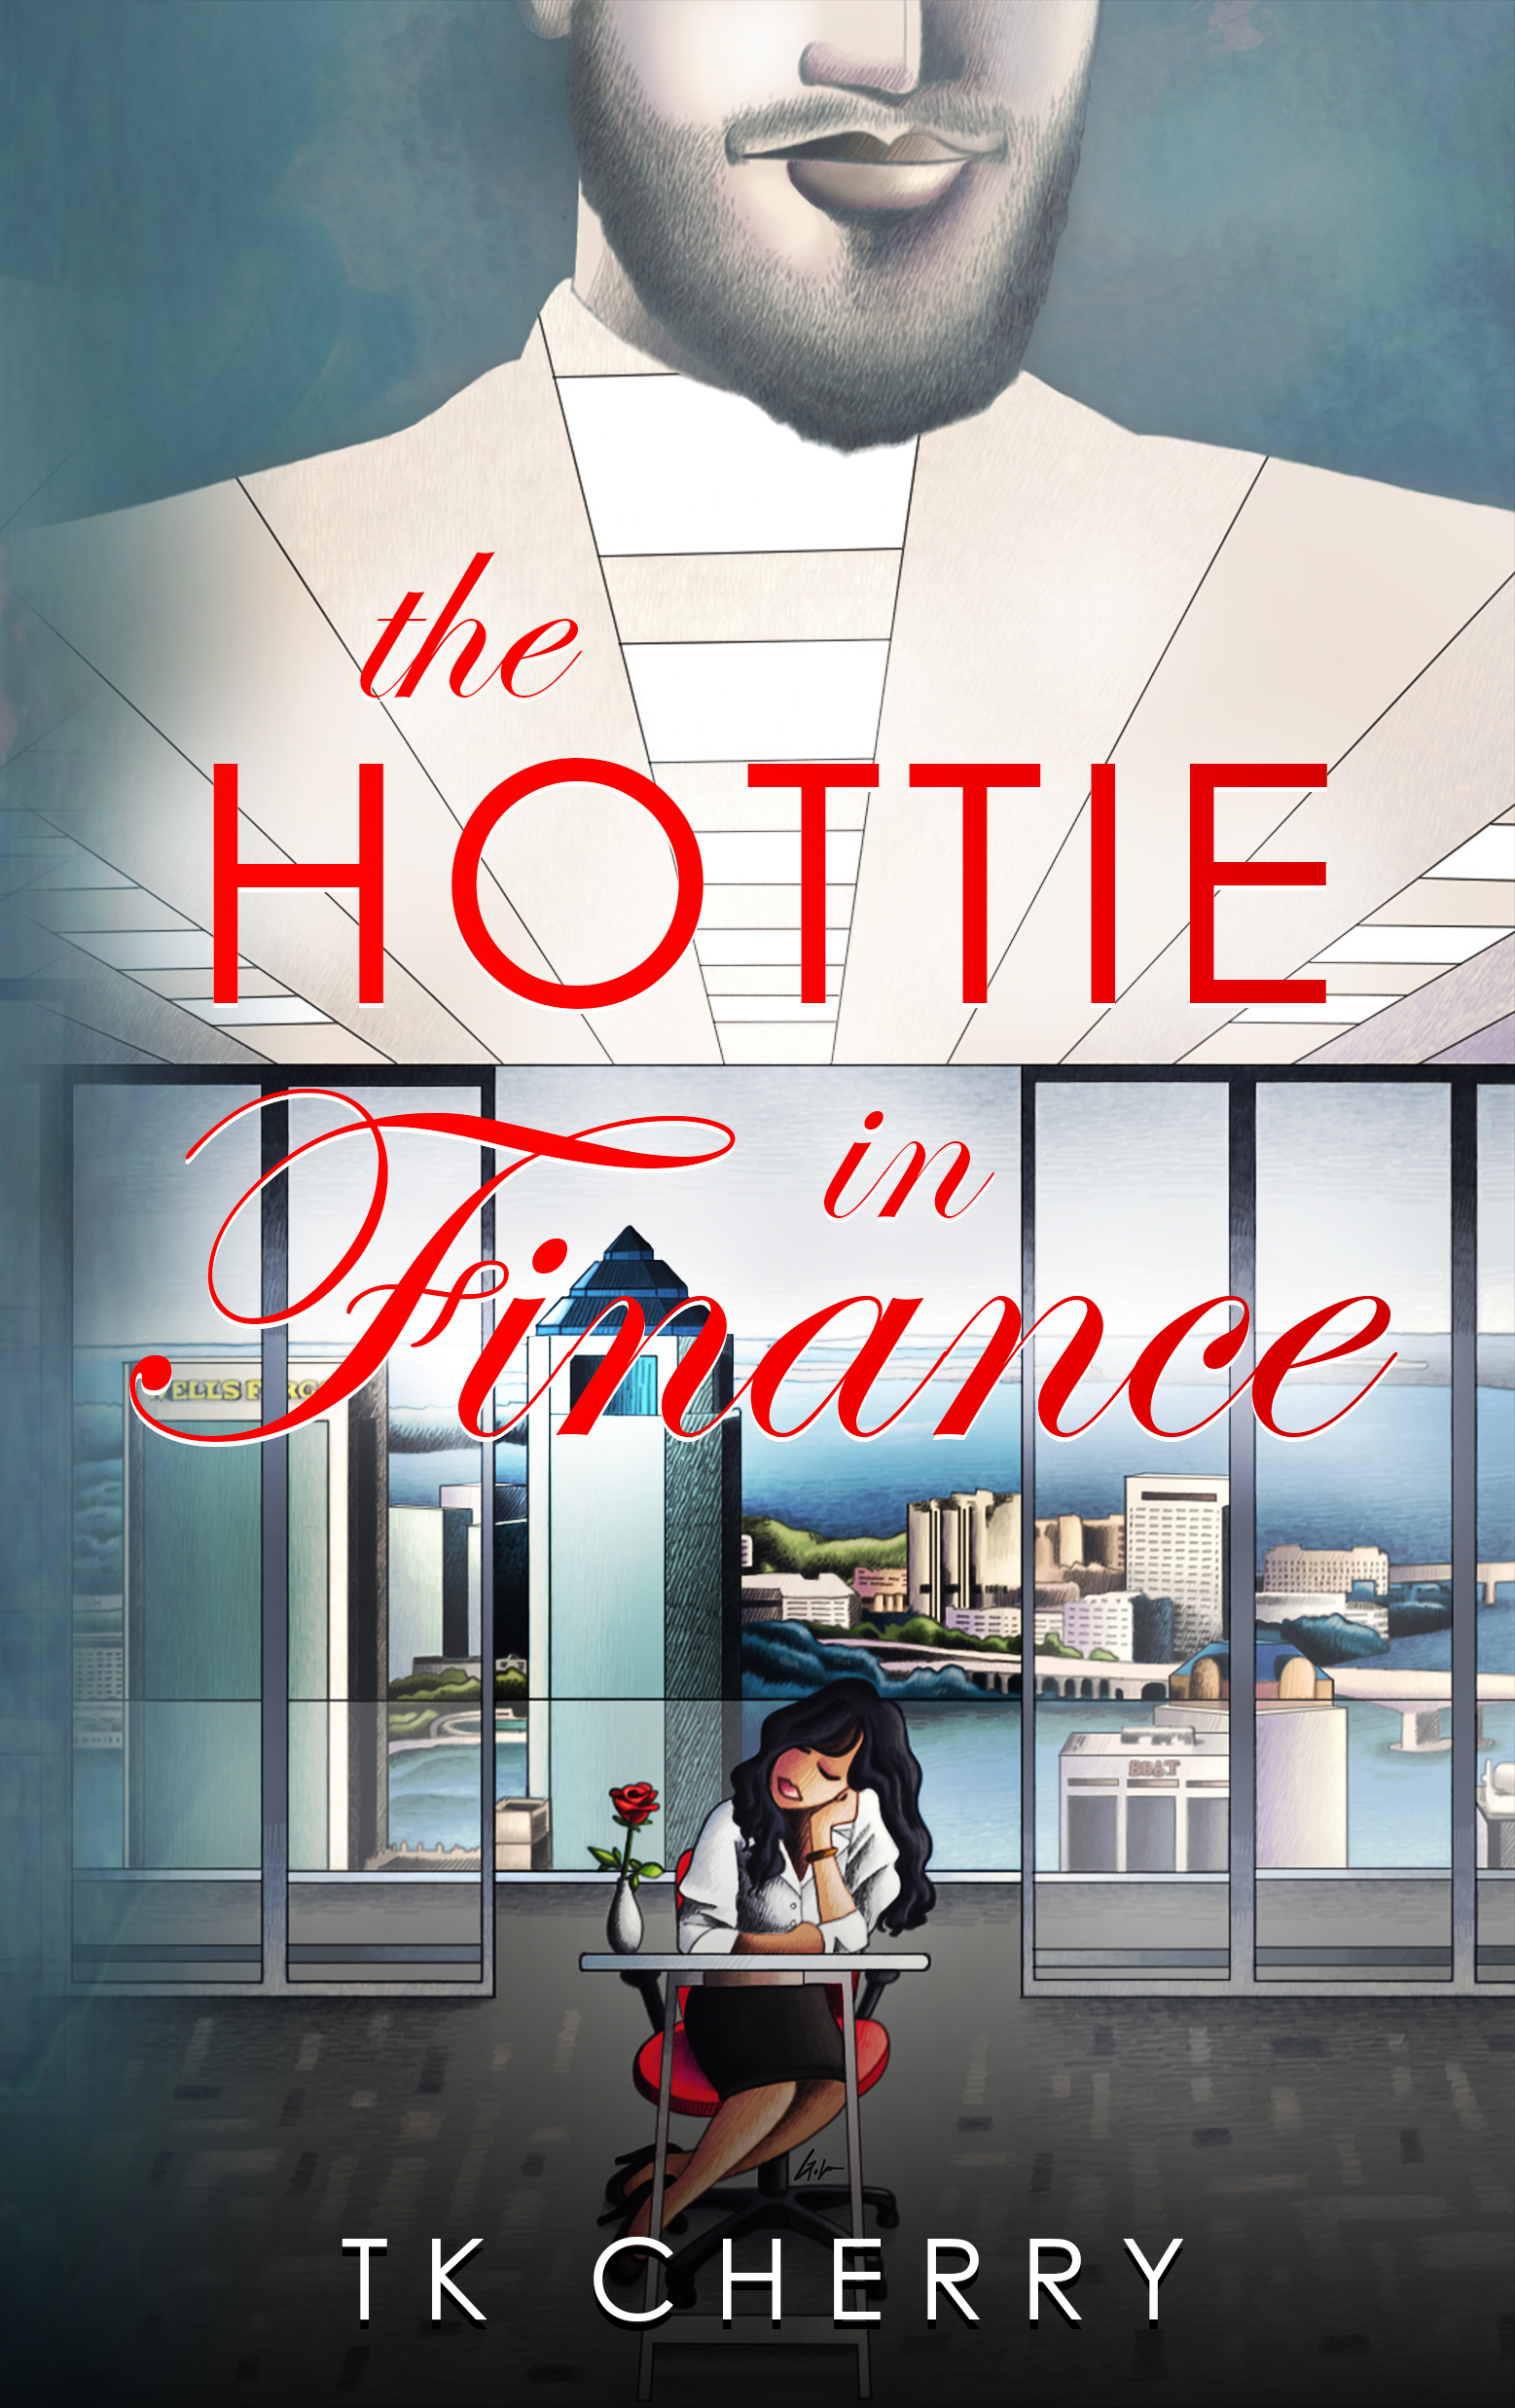 the-hottie-in-finance-tk-cherry-e-cover